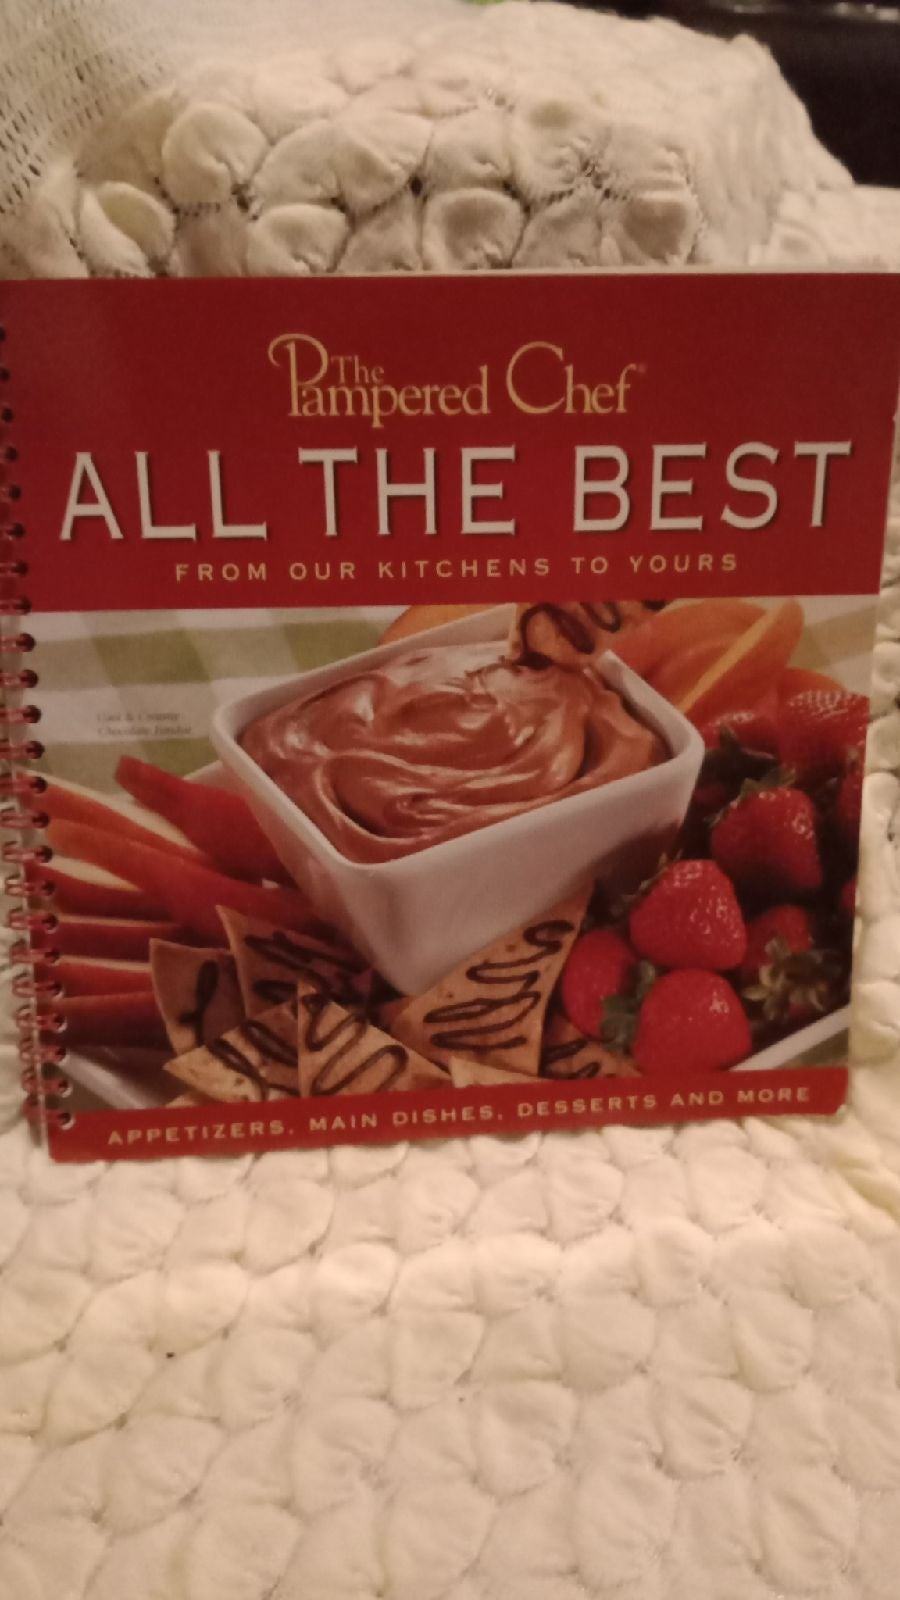 All the Best: the Pampered Chef